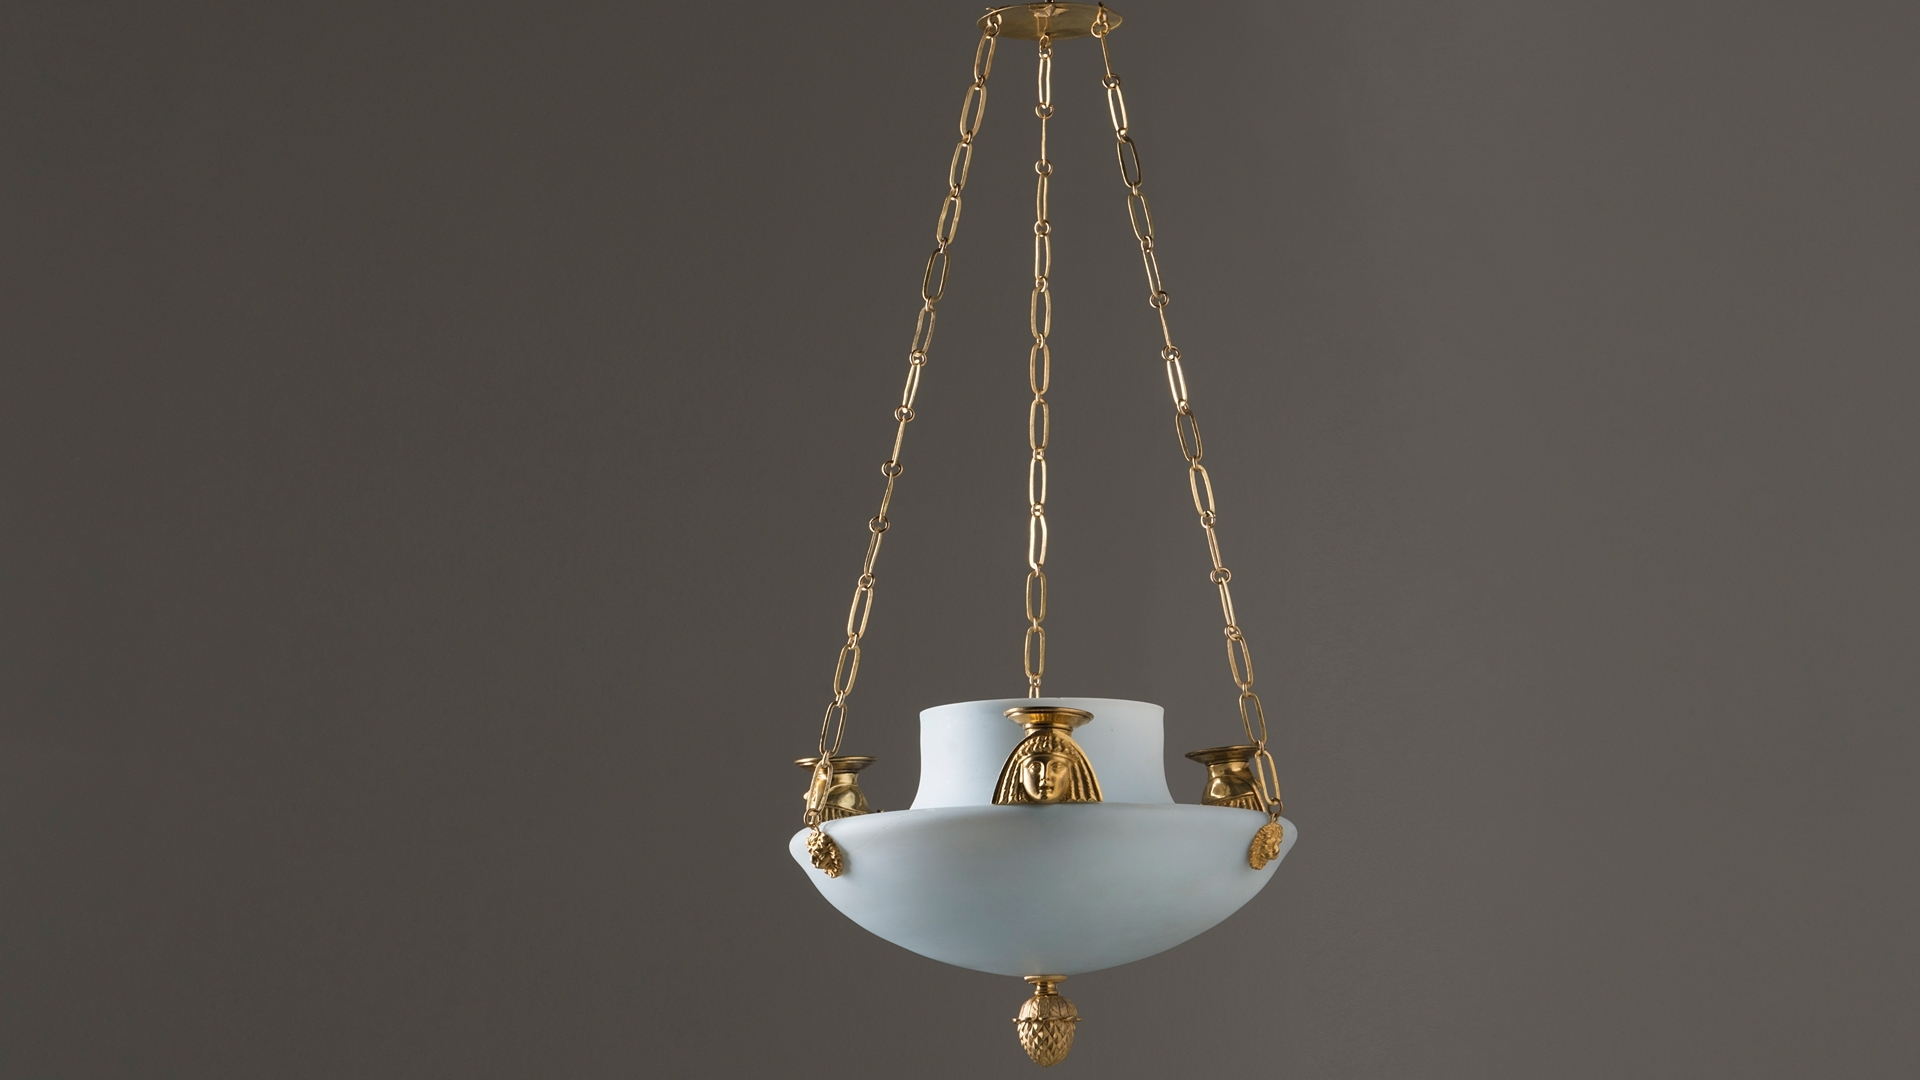 Chandelier In Egyptian Taste Circa 1800 Hoffmans Antikhandel With Regard To 2019 Egyptian Chandelier (View 14 of 20)